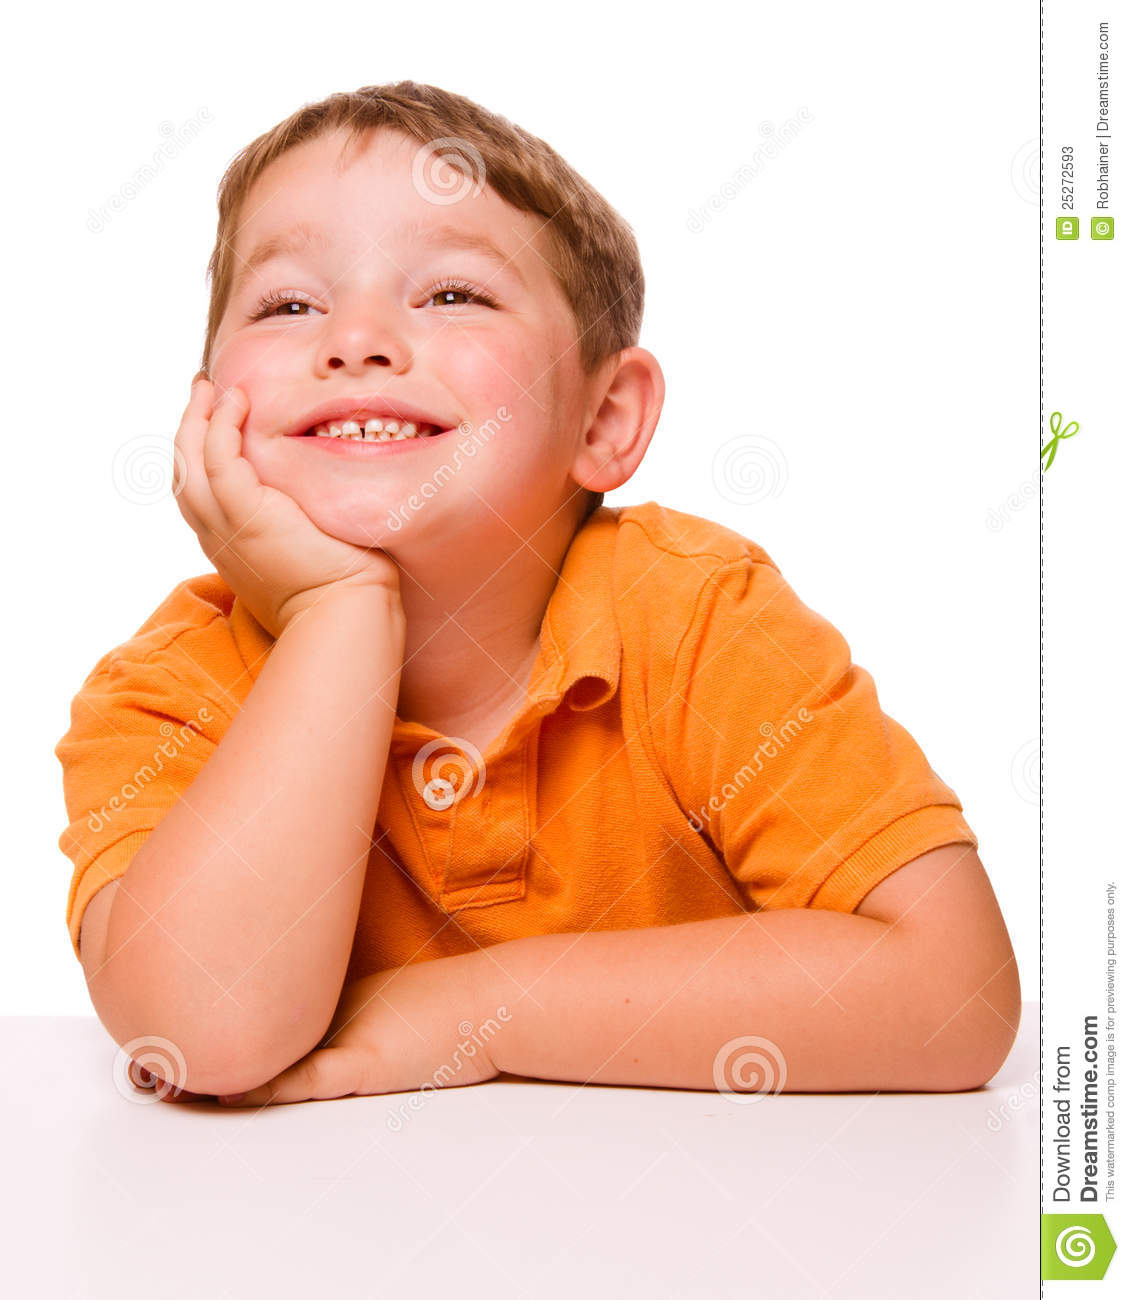 Happy Attentive Child Sitting At Desk Stock Photos - Image: 25272593 Happy High School Student Clipart